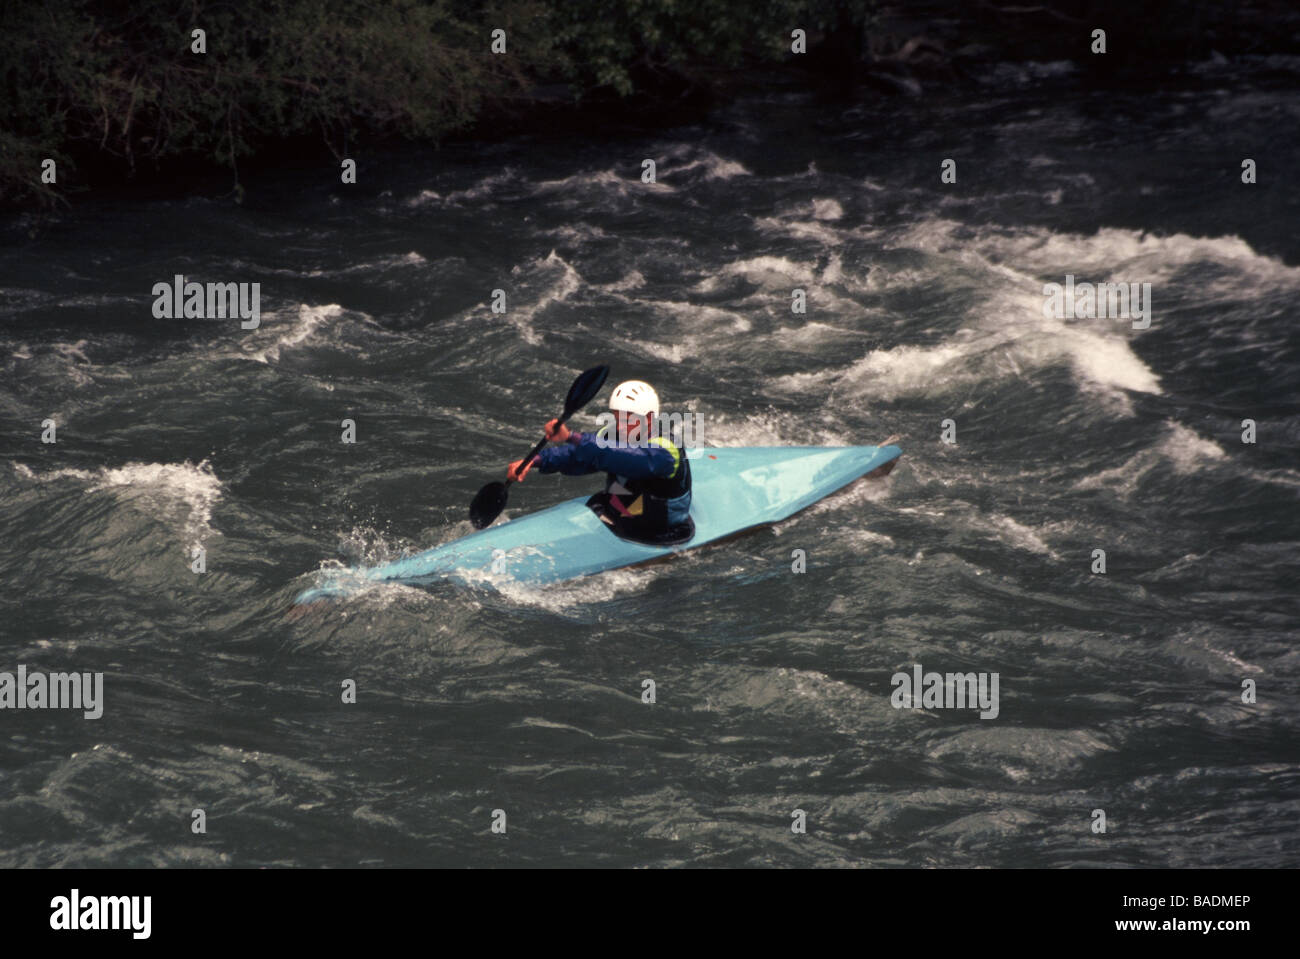 Spain.Canoeist on the River Noguera Pallaresa in the Spanish Pyrenees; - Stock Image